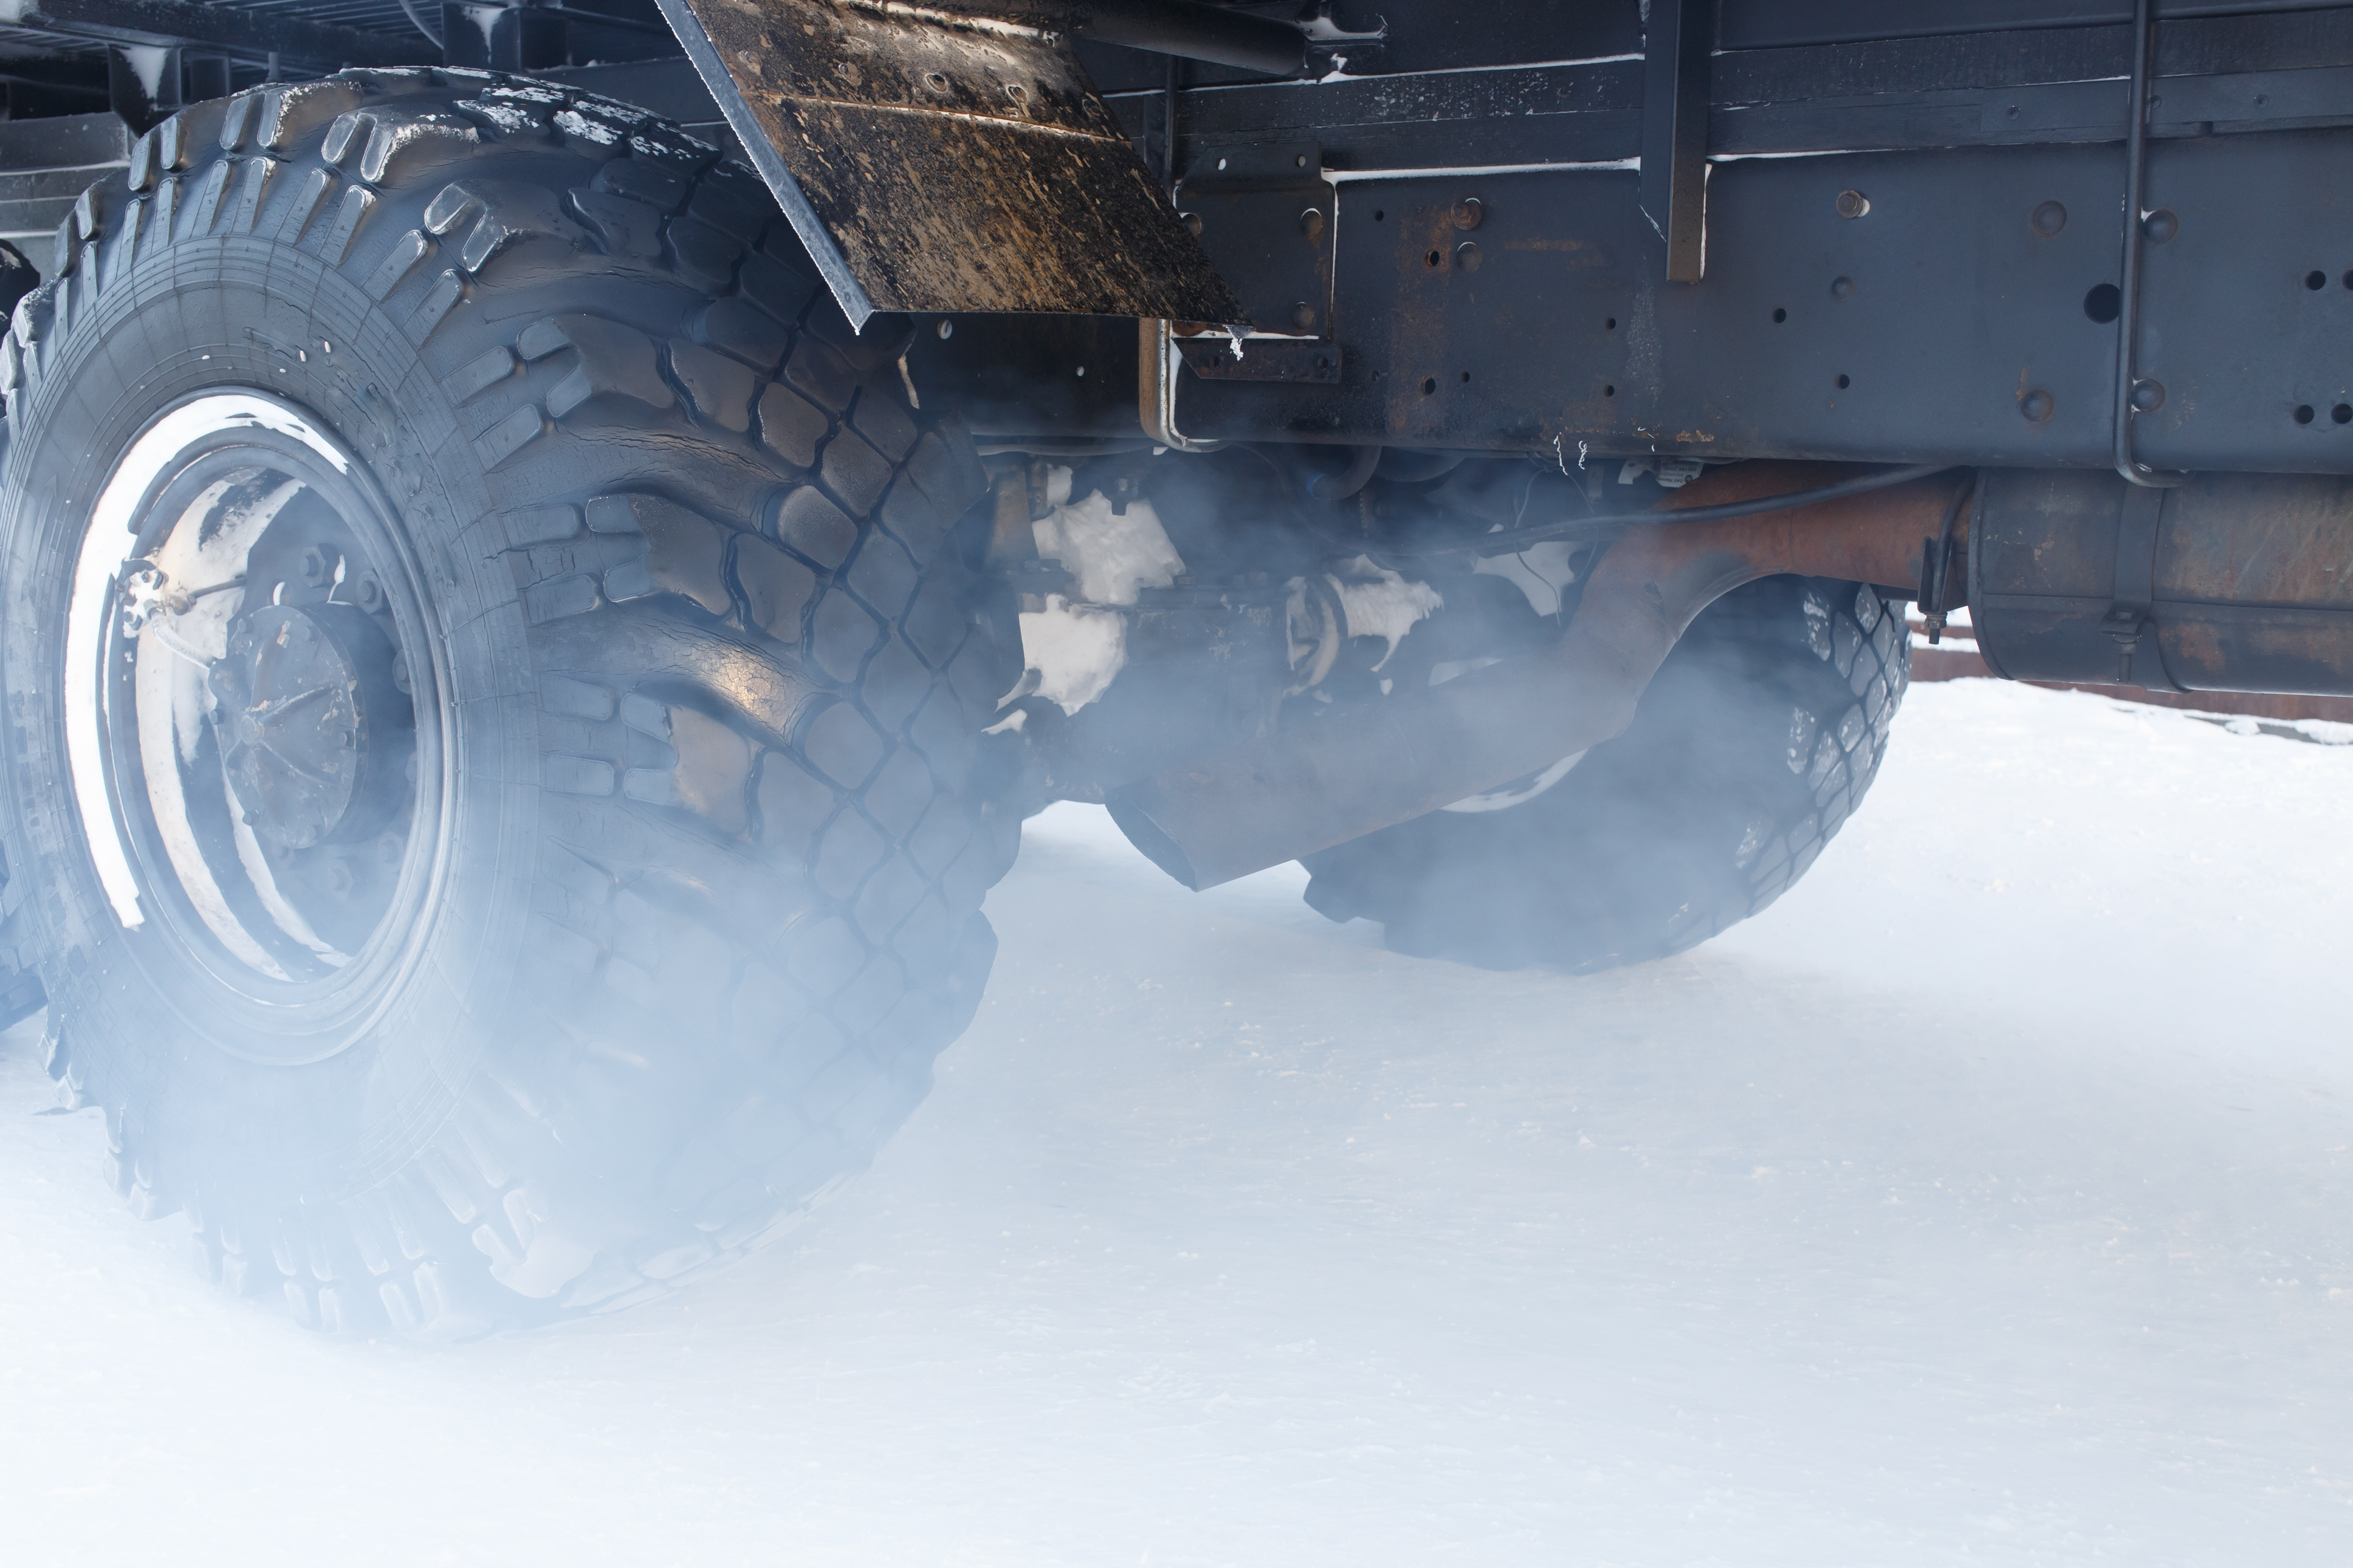 Tailpipe Emissions. Shutterstock